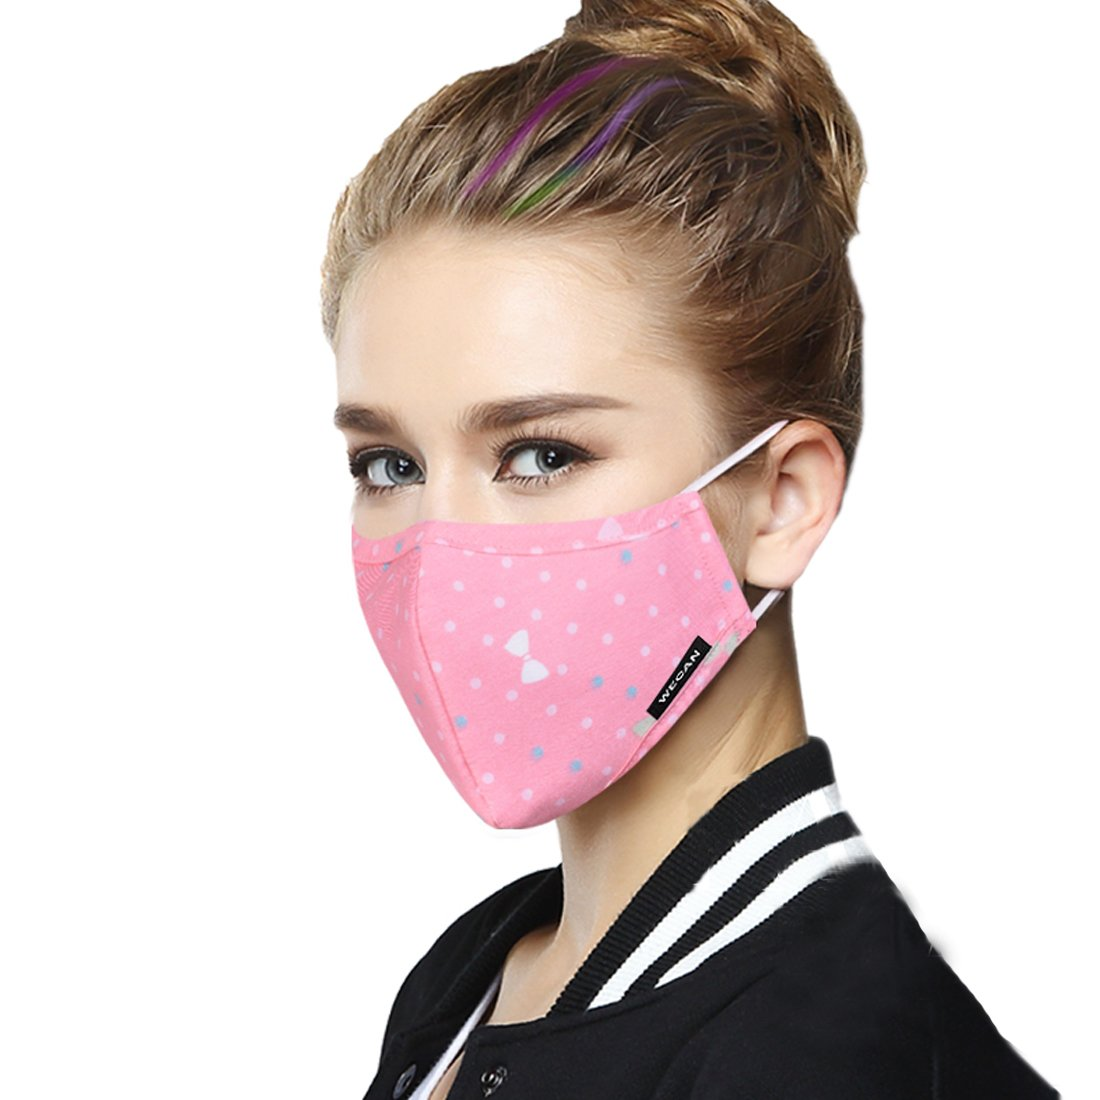 Healthyair Masks Thin Mask Washable Mouth Masks Replaceable Filter (One Mask + 6 Filters) Activated Carbon Filter - Men Black And White Grid (Medium, Women-01)